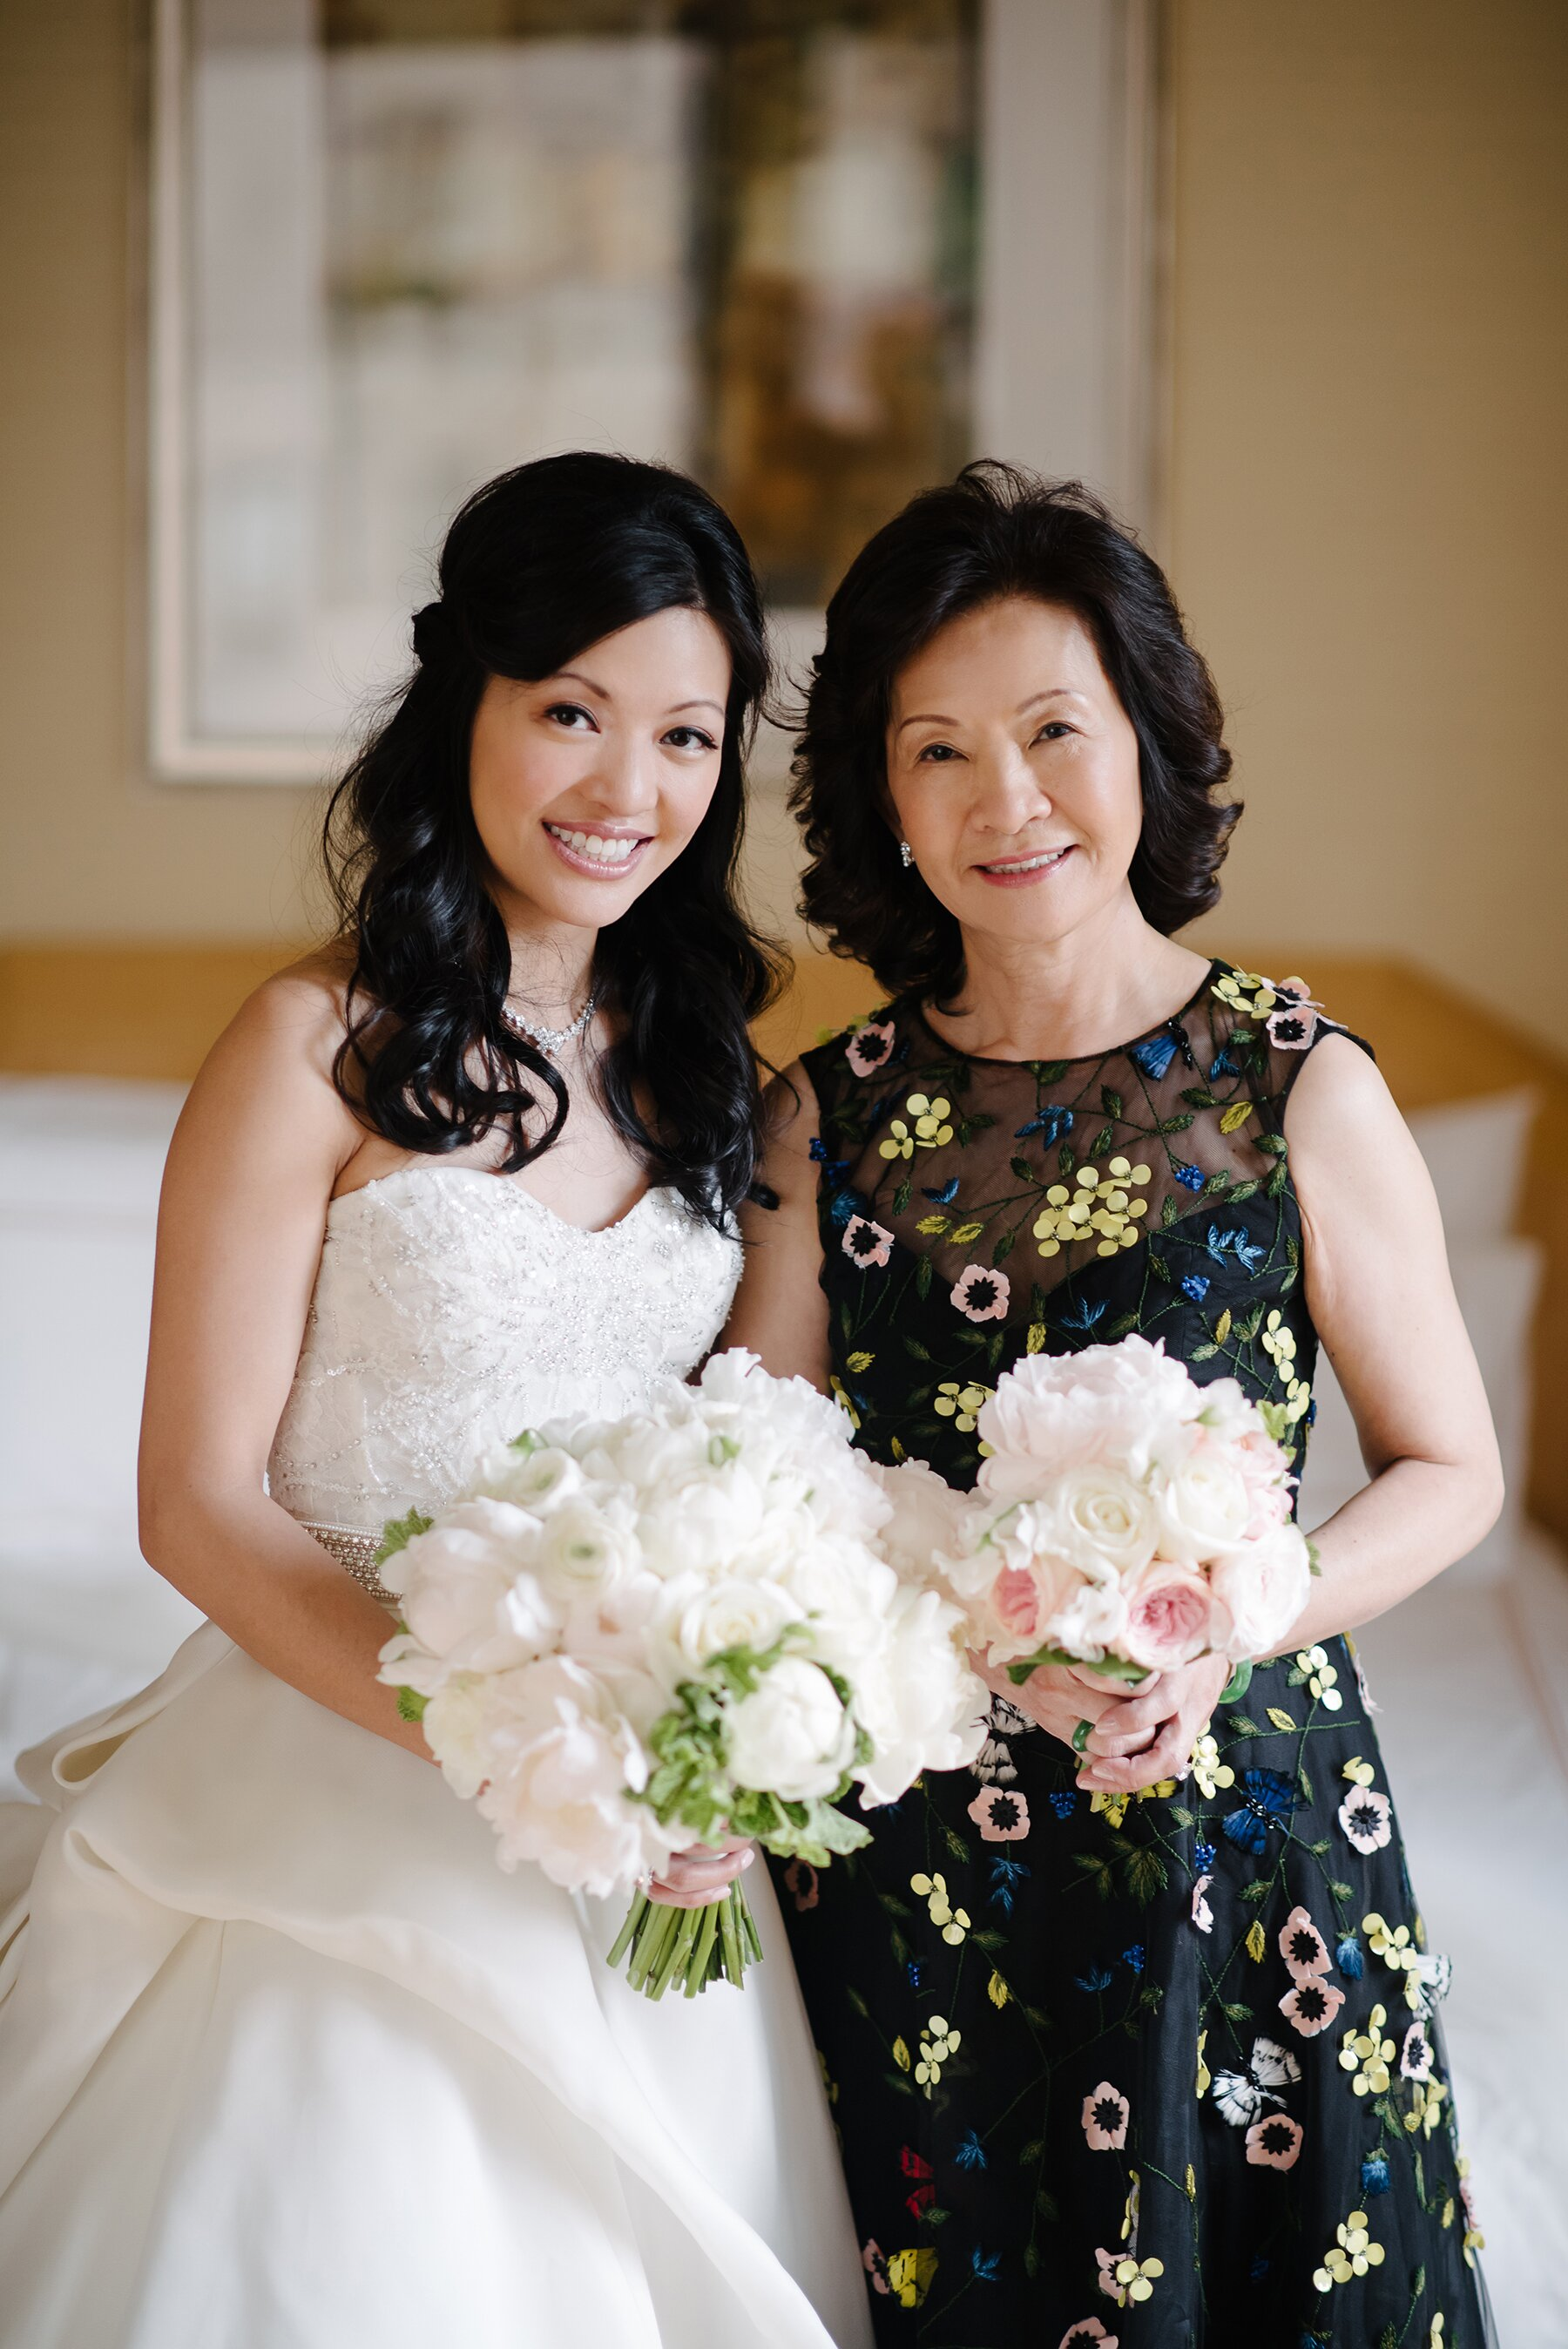 Can The Mother Of Bride Or Groom Wear Black To